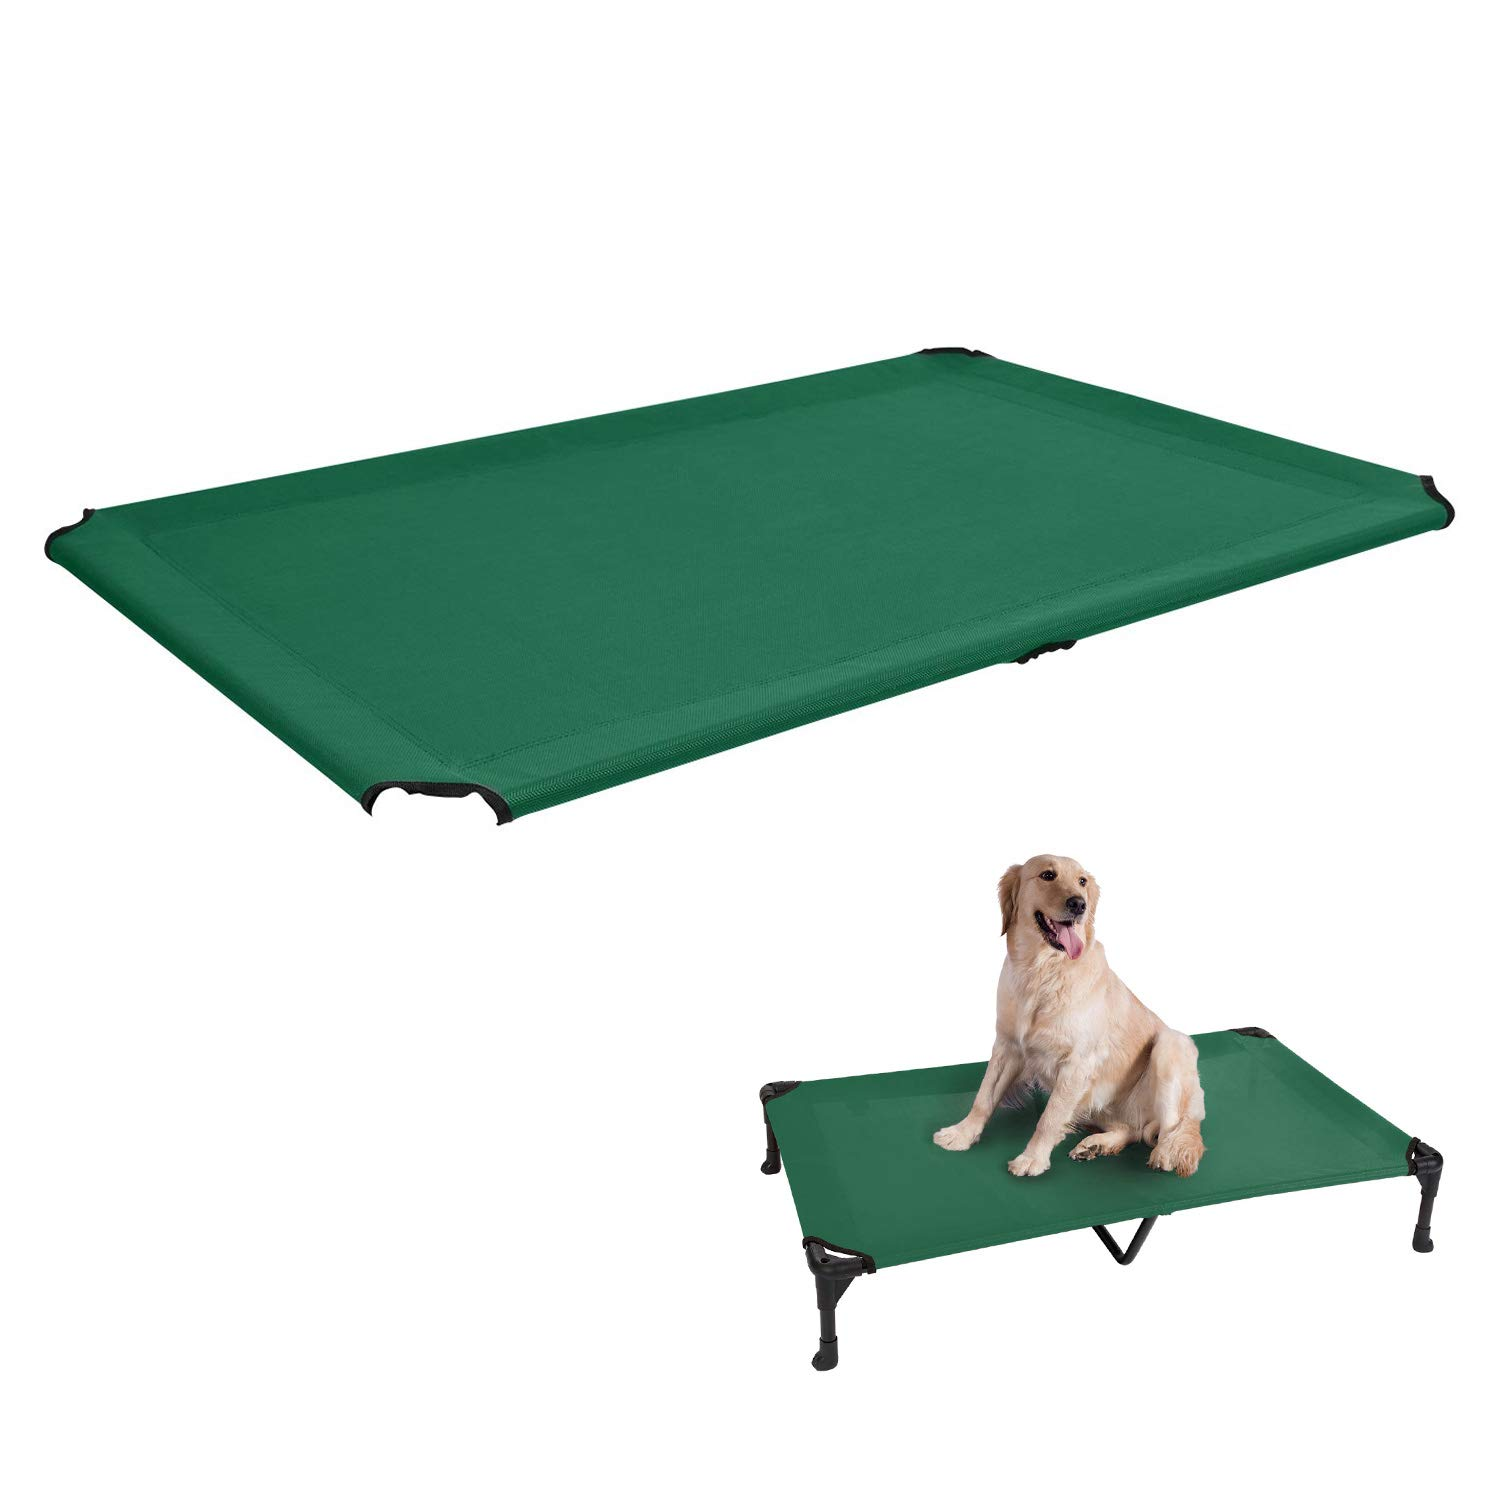 Veehoo Cooling Elevated Dog Bed Replacement Cover, Washable & Breathable Pet Cot Bed Mat, 4 Sizes & 7 Colors in Available